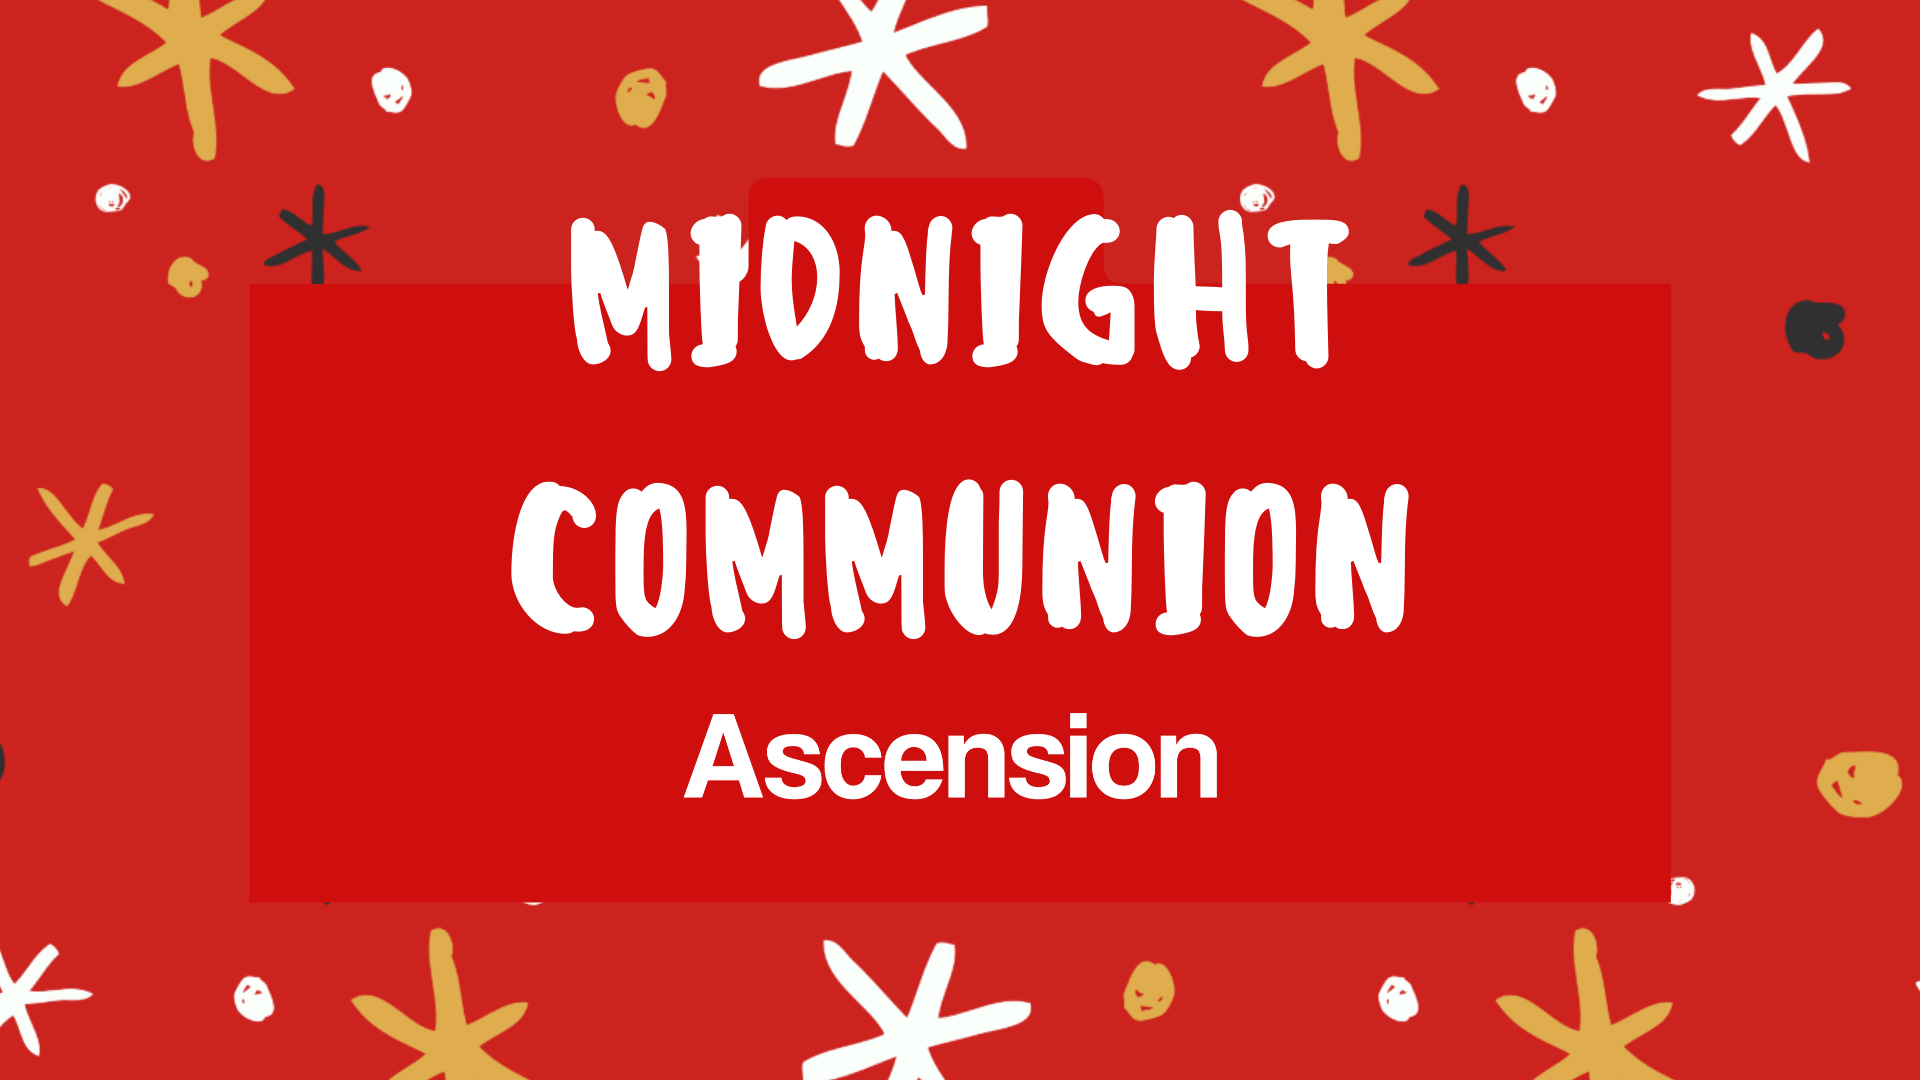 Midnight Communion - Starts 11.30pm